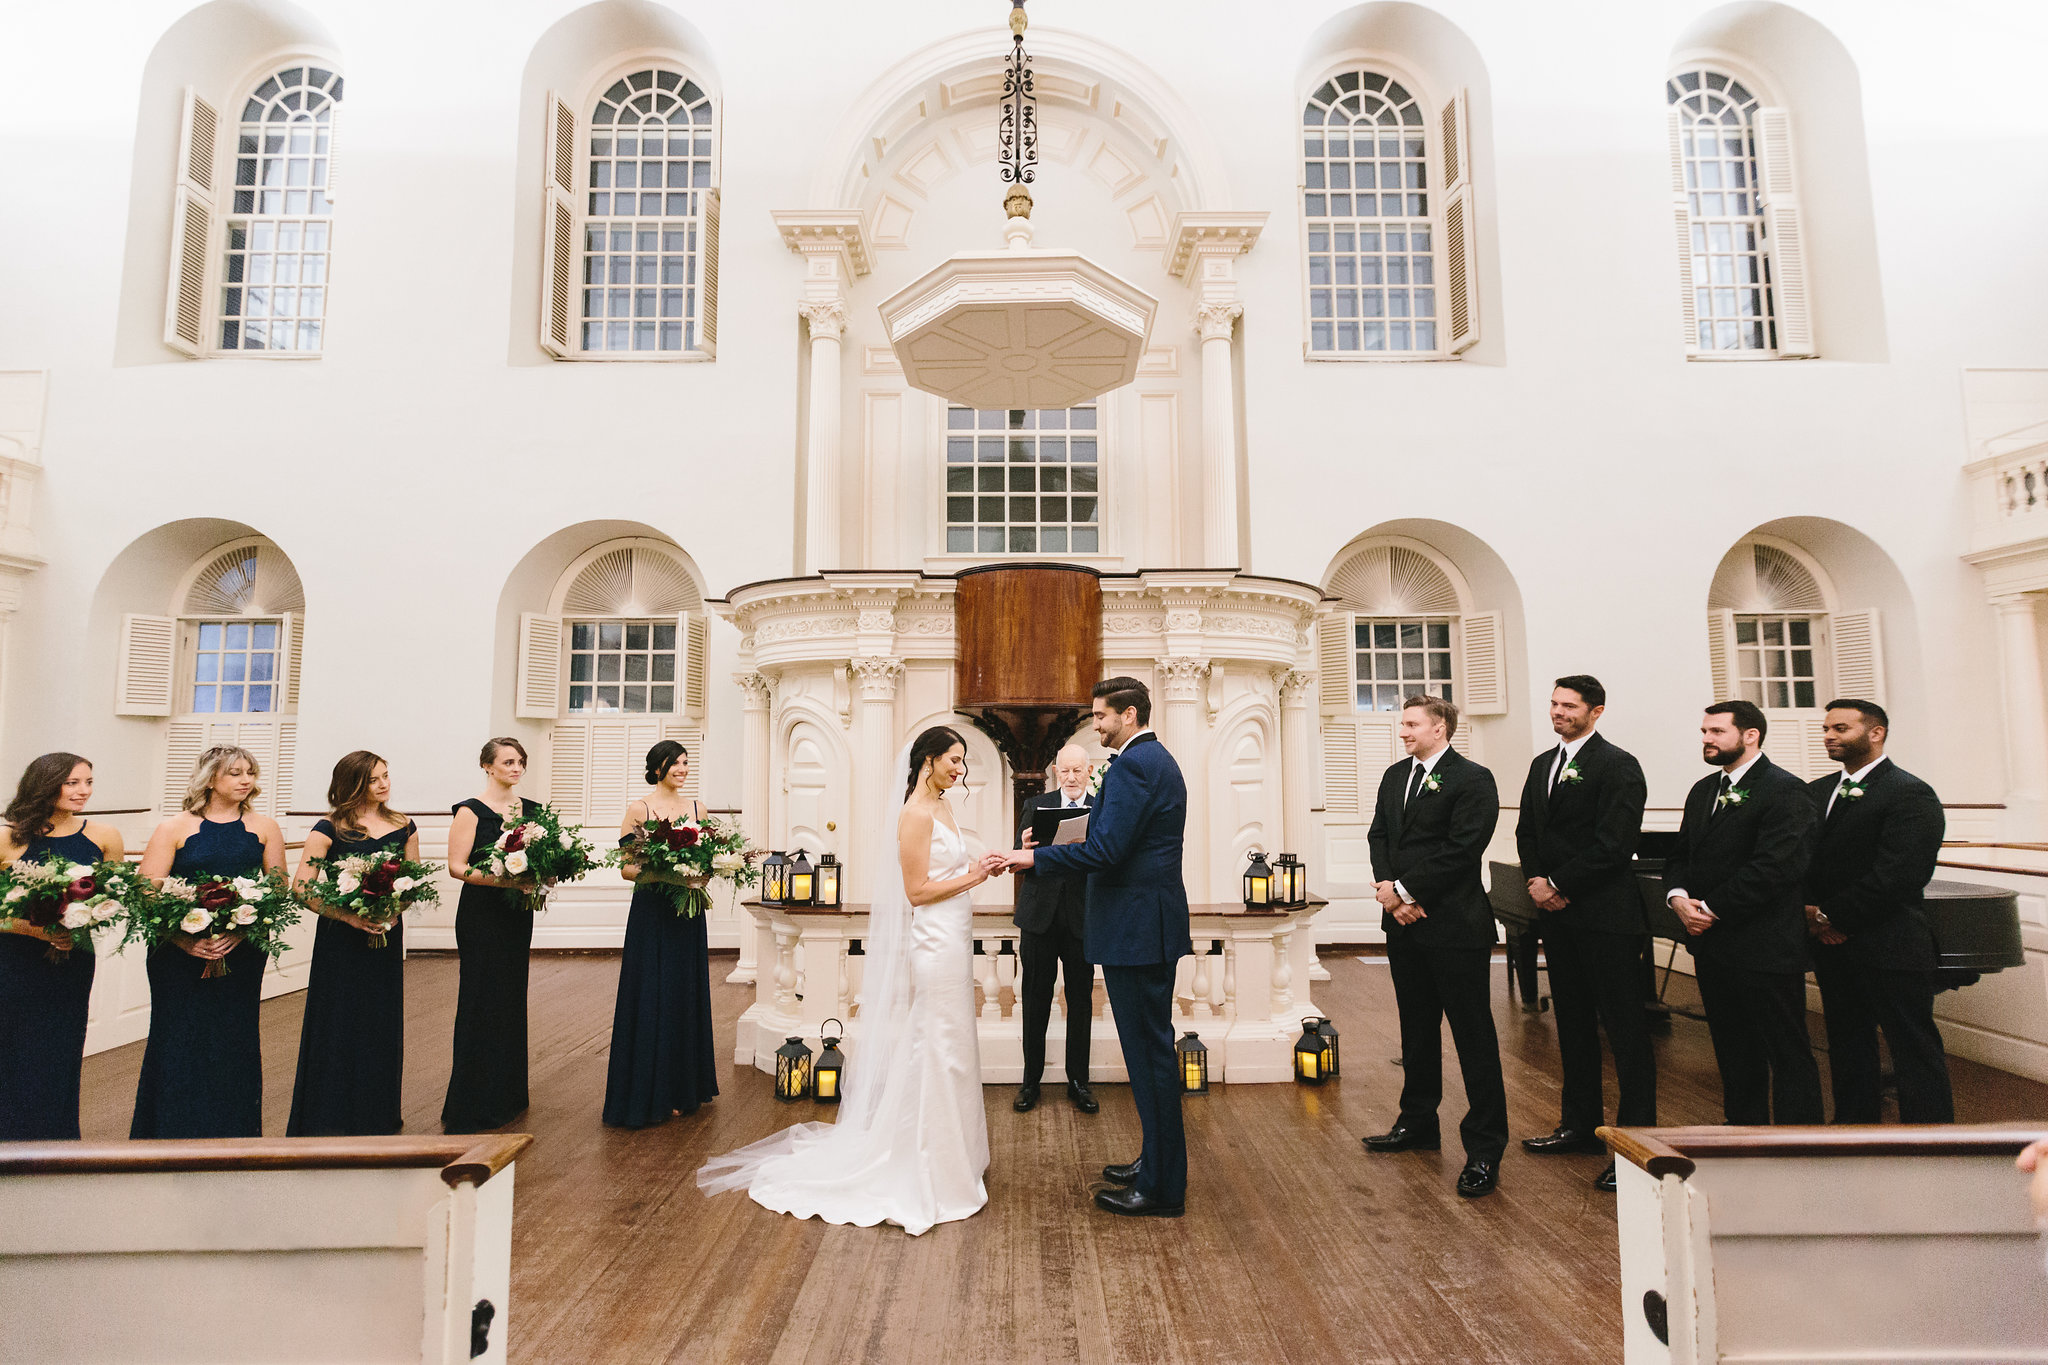 Sarah and Justin exchange vows at the Old South Meeting House for their Boston Wedding.  Photo by  Lindsay Hite Photography .